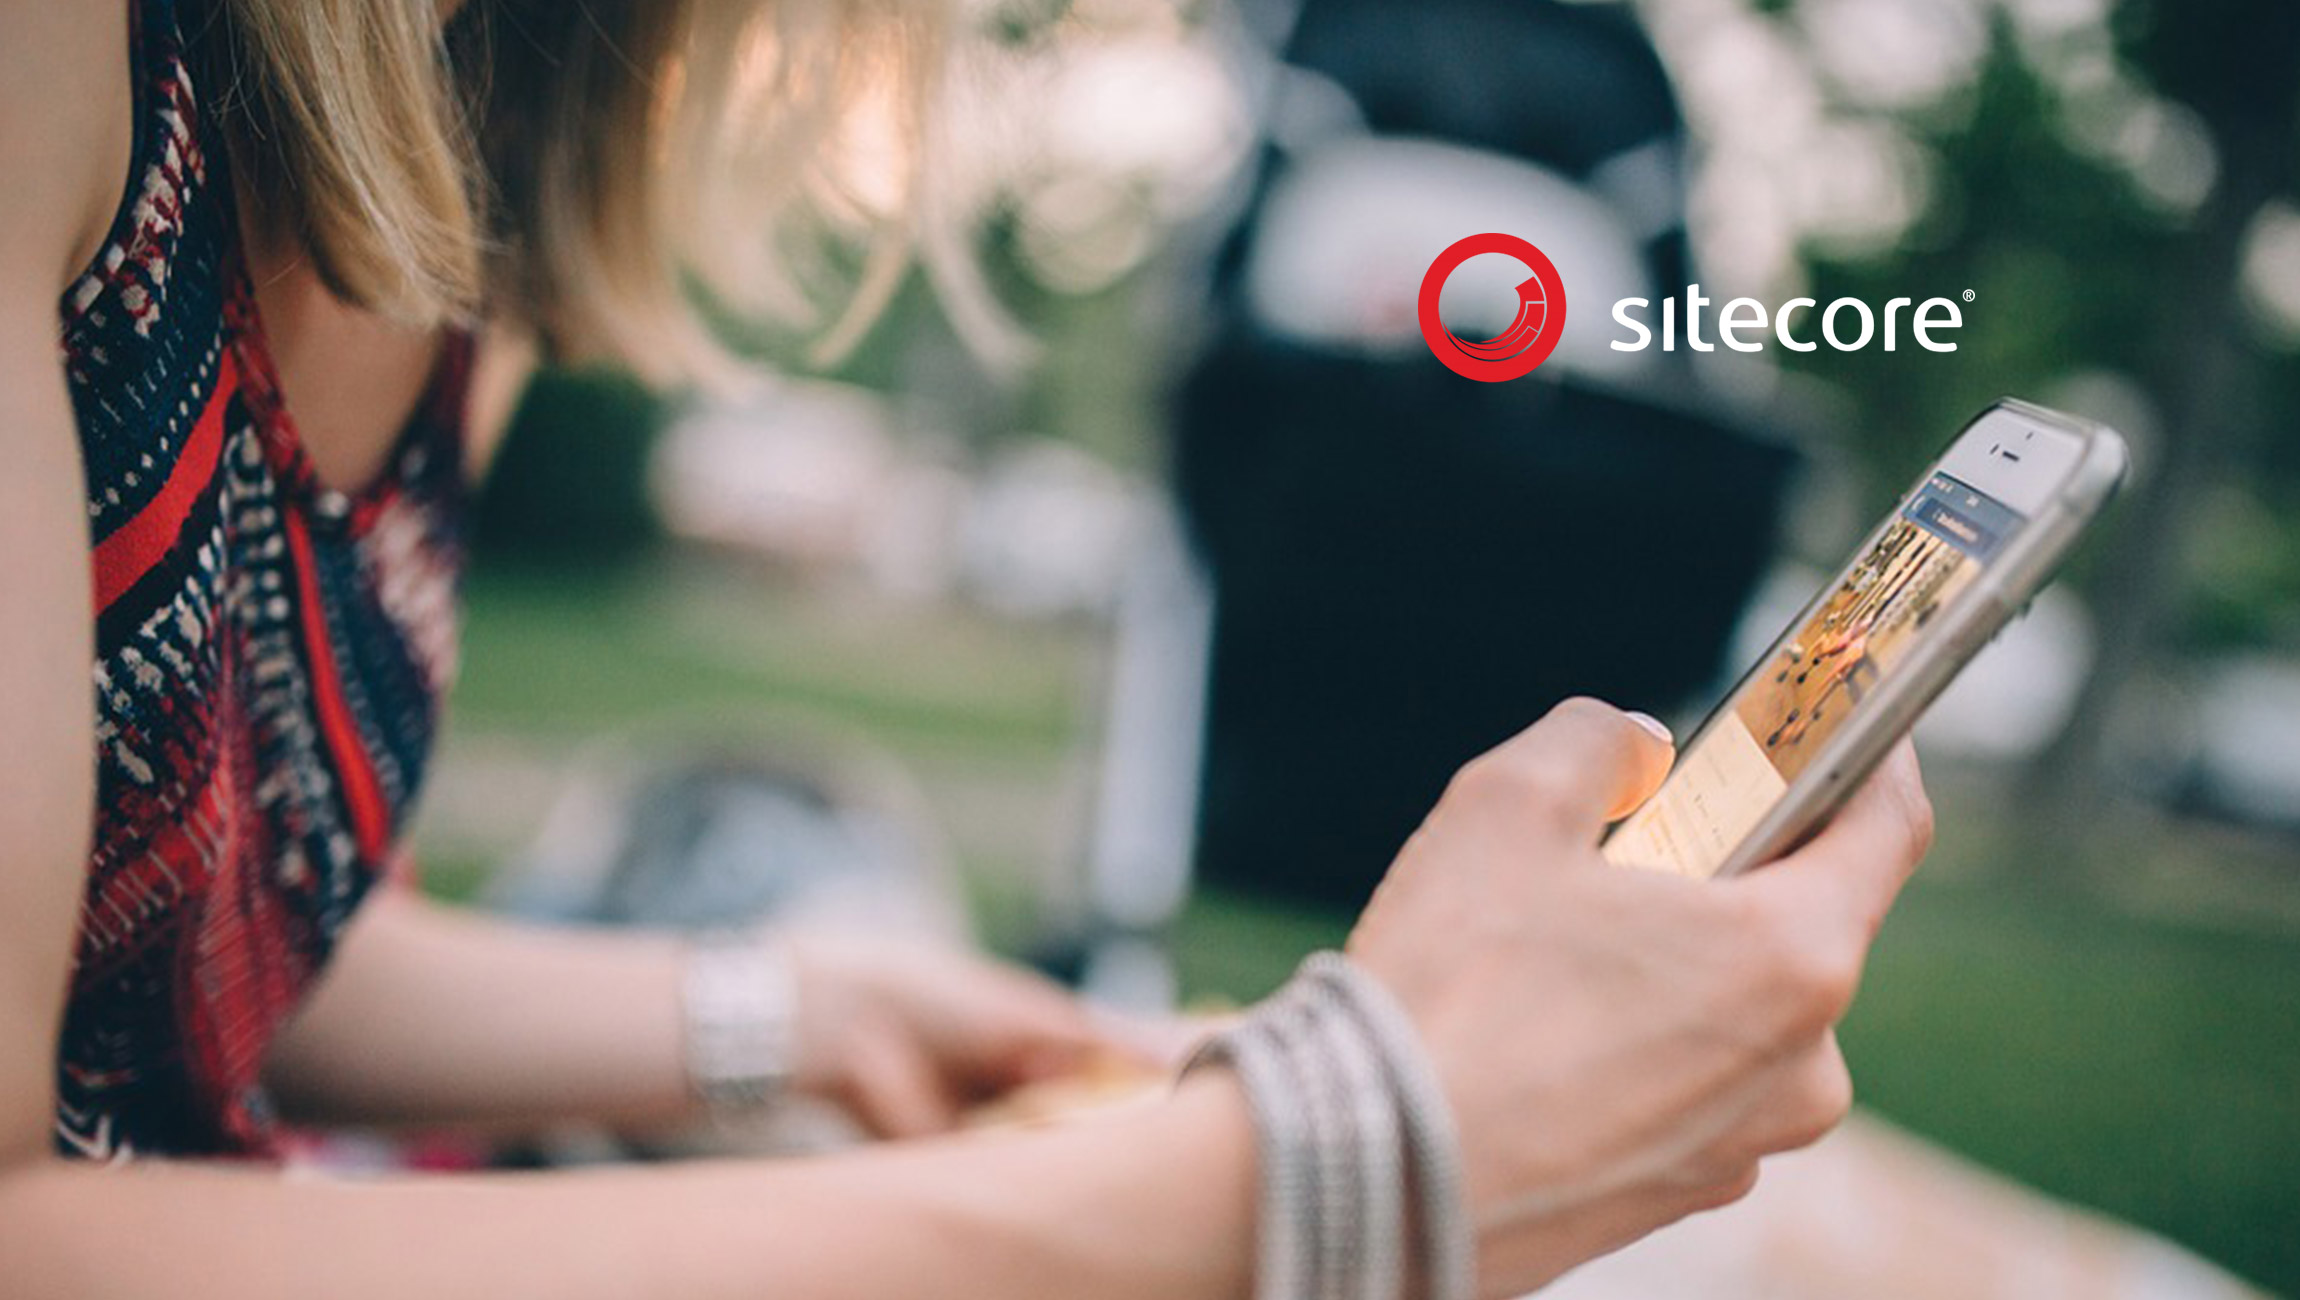 Sitecore Makes AI-Powered Auto Personalization a Standard Feature of Industry Leading Digital Experience Platform